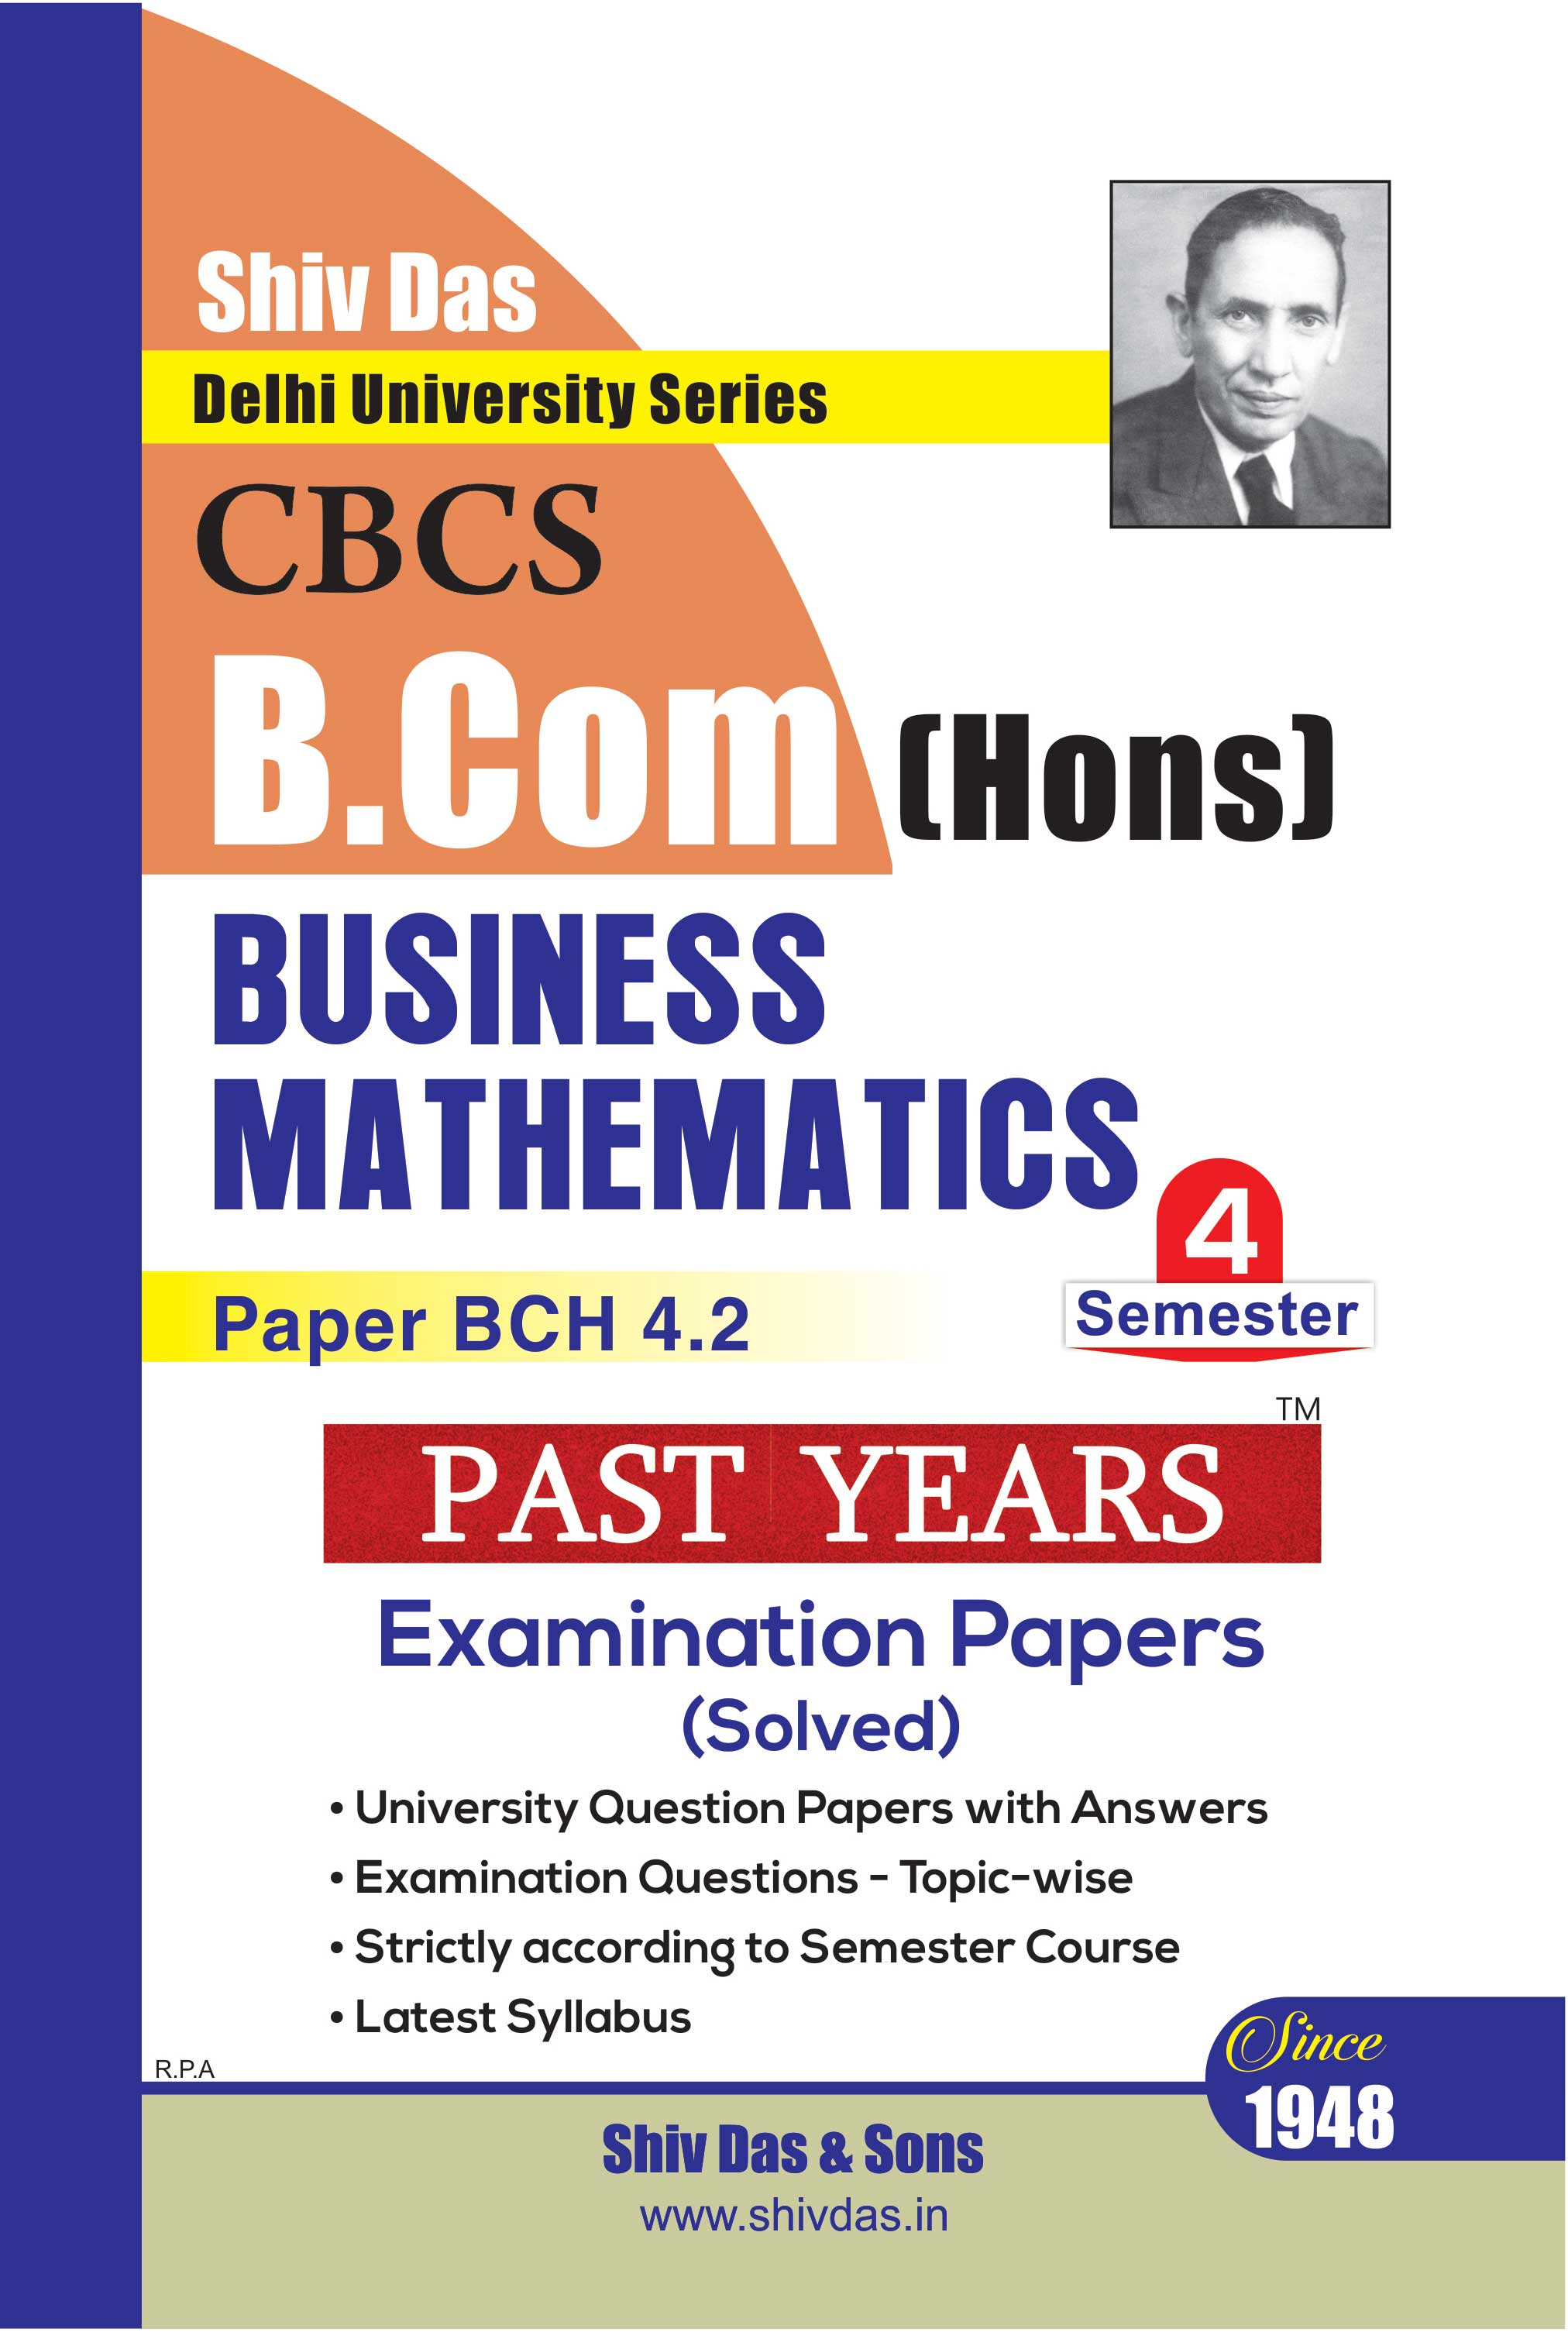 Business Mathematics for B.Com Hons Semester 4 for Delhi University by Shiv Das